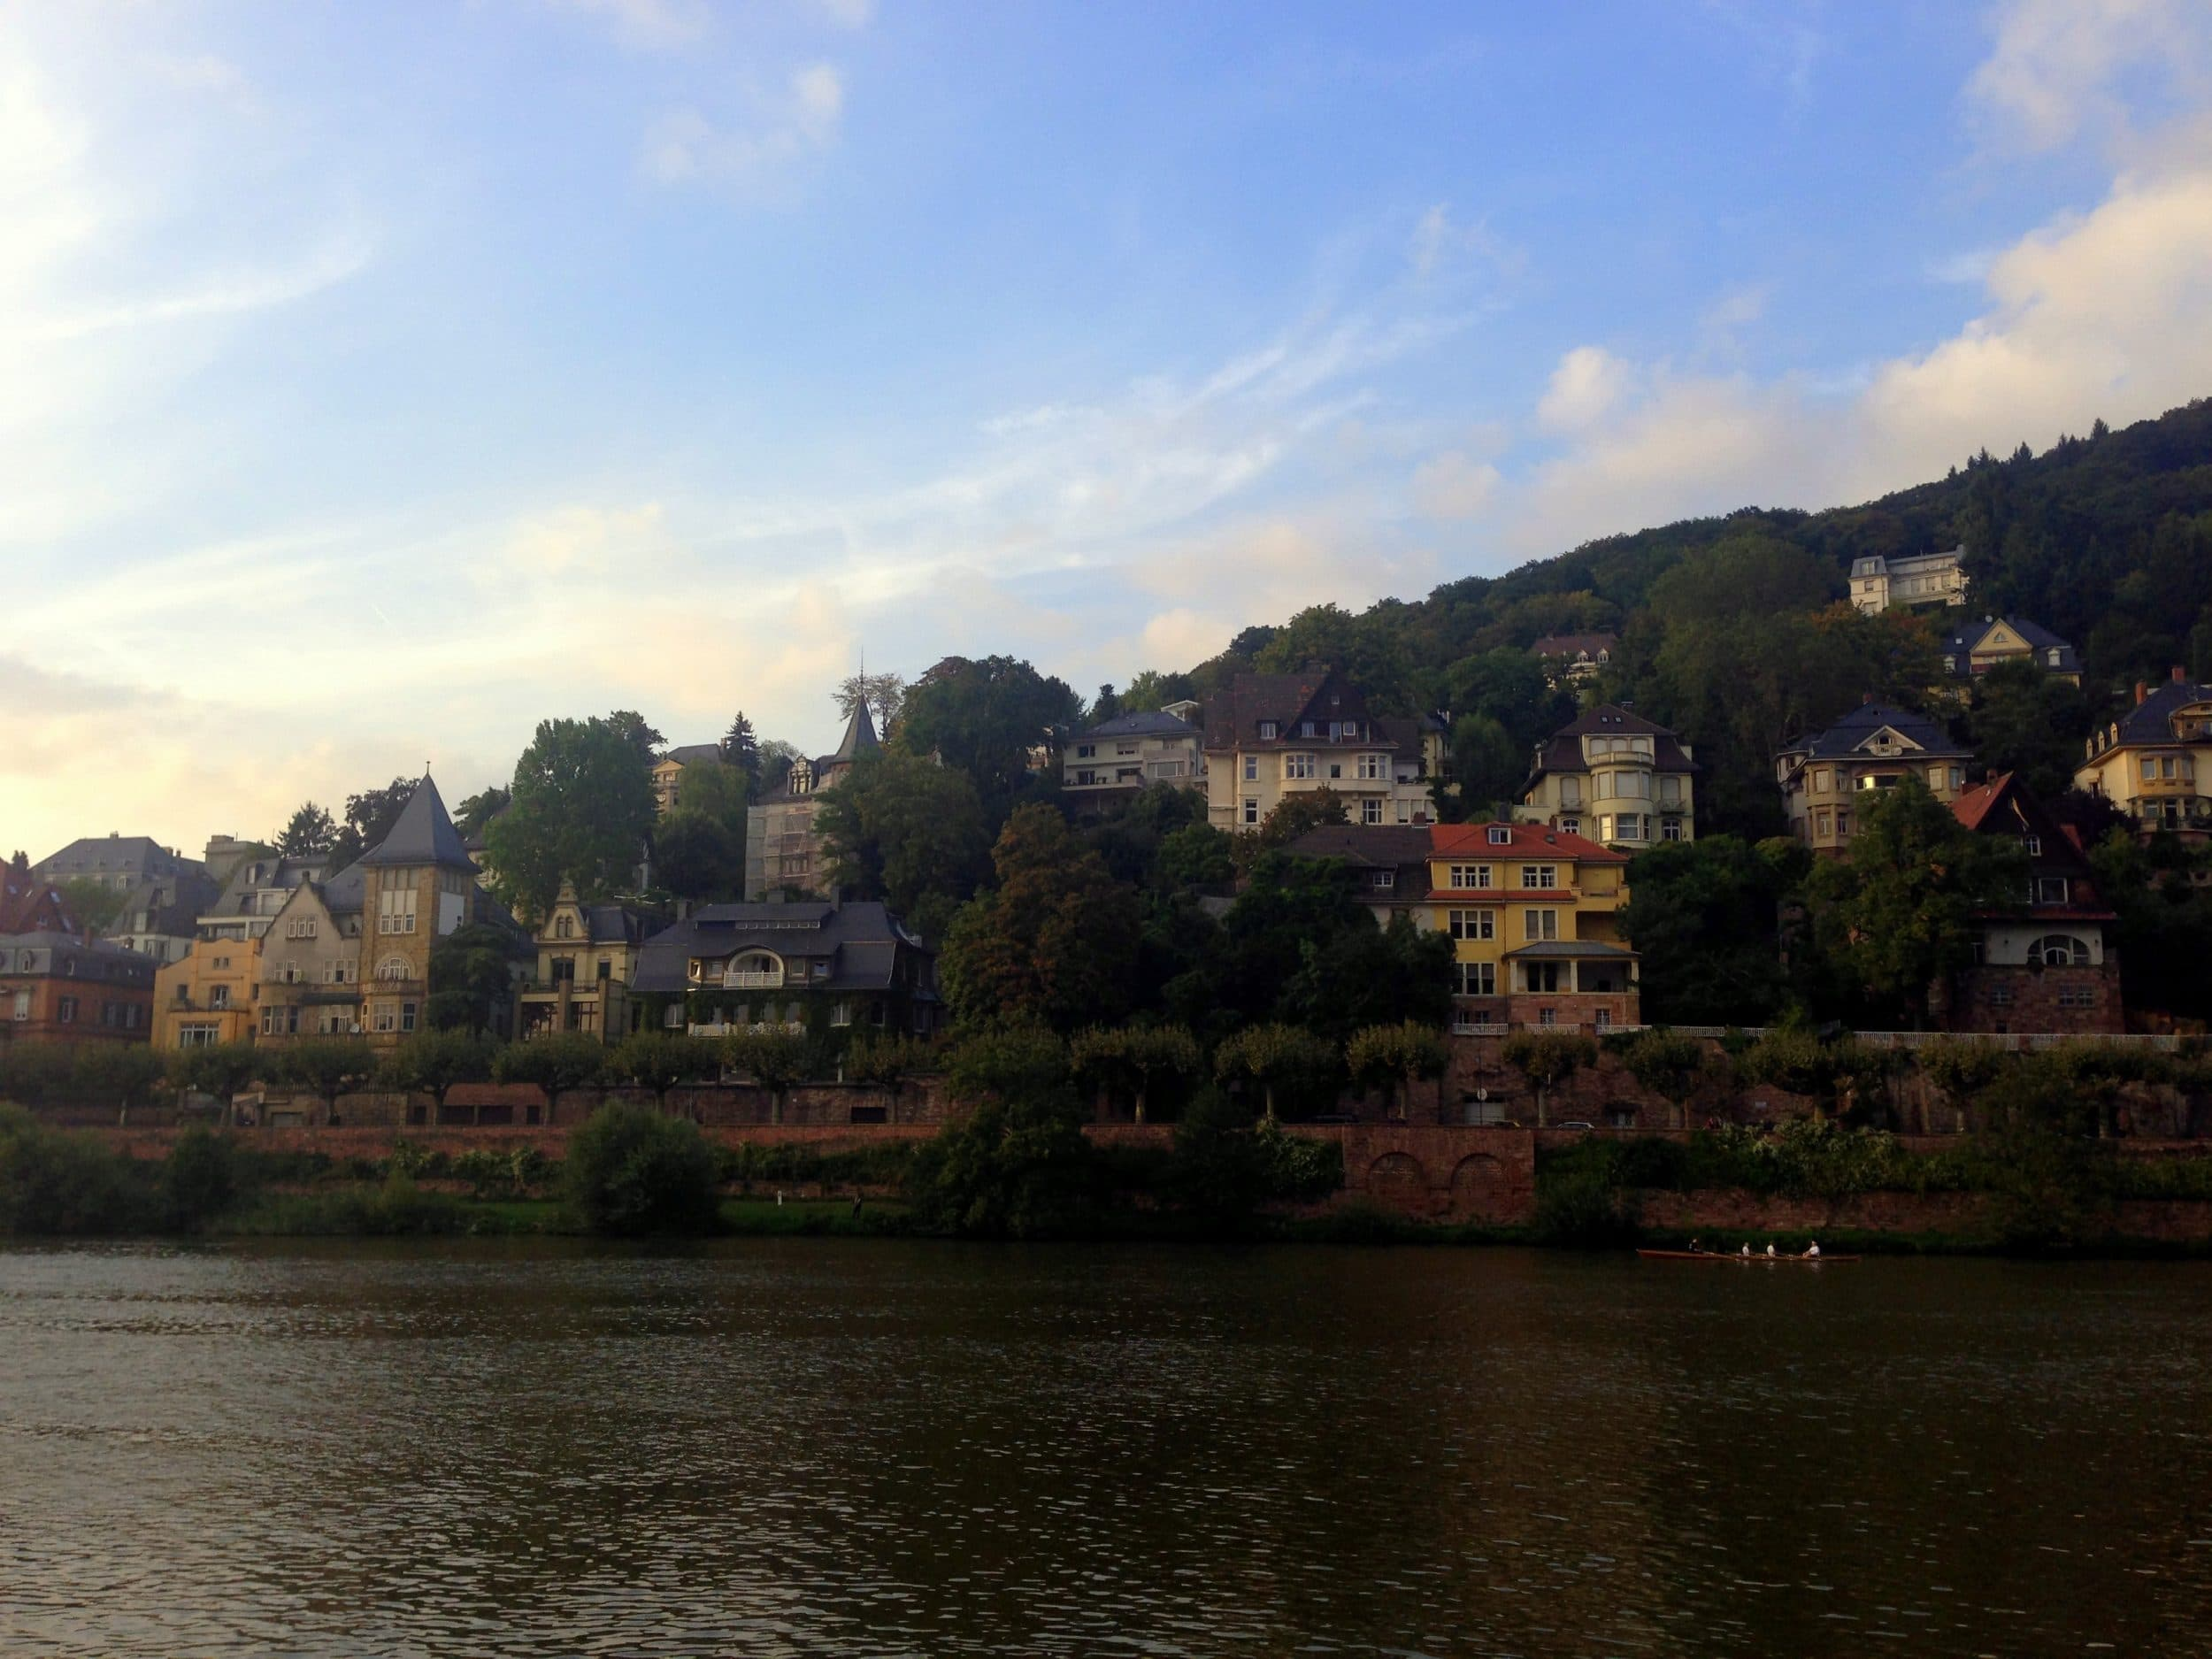 First days in Heidelberg via Wayfaring With Wagner